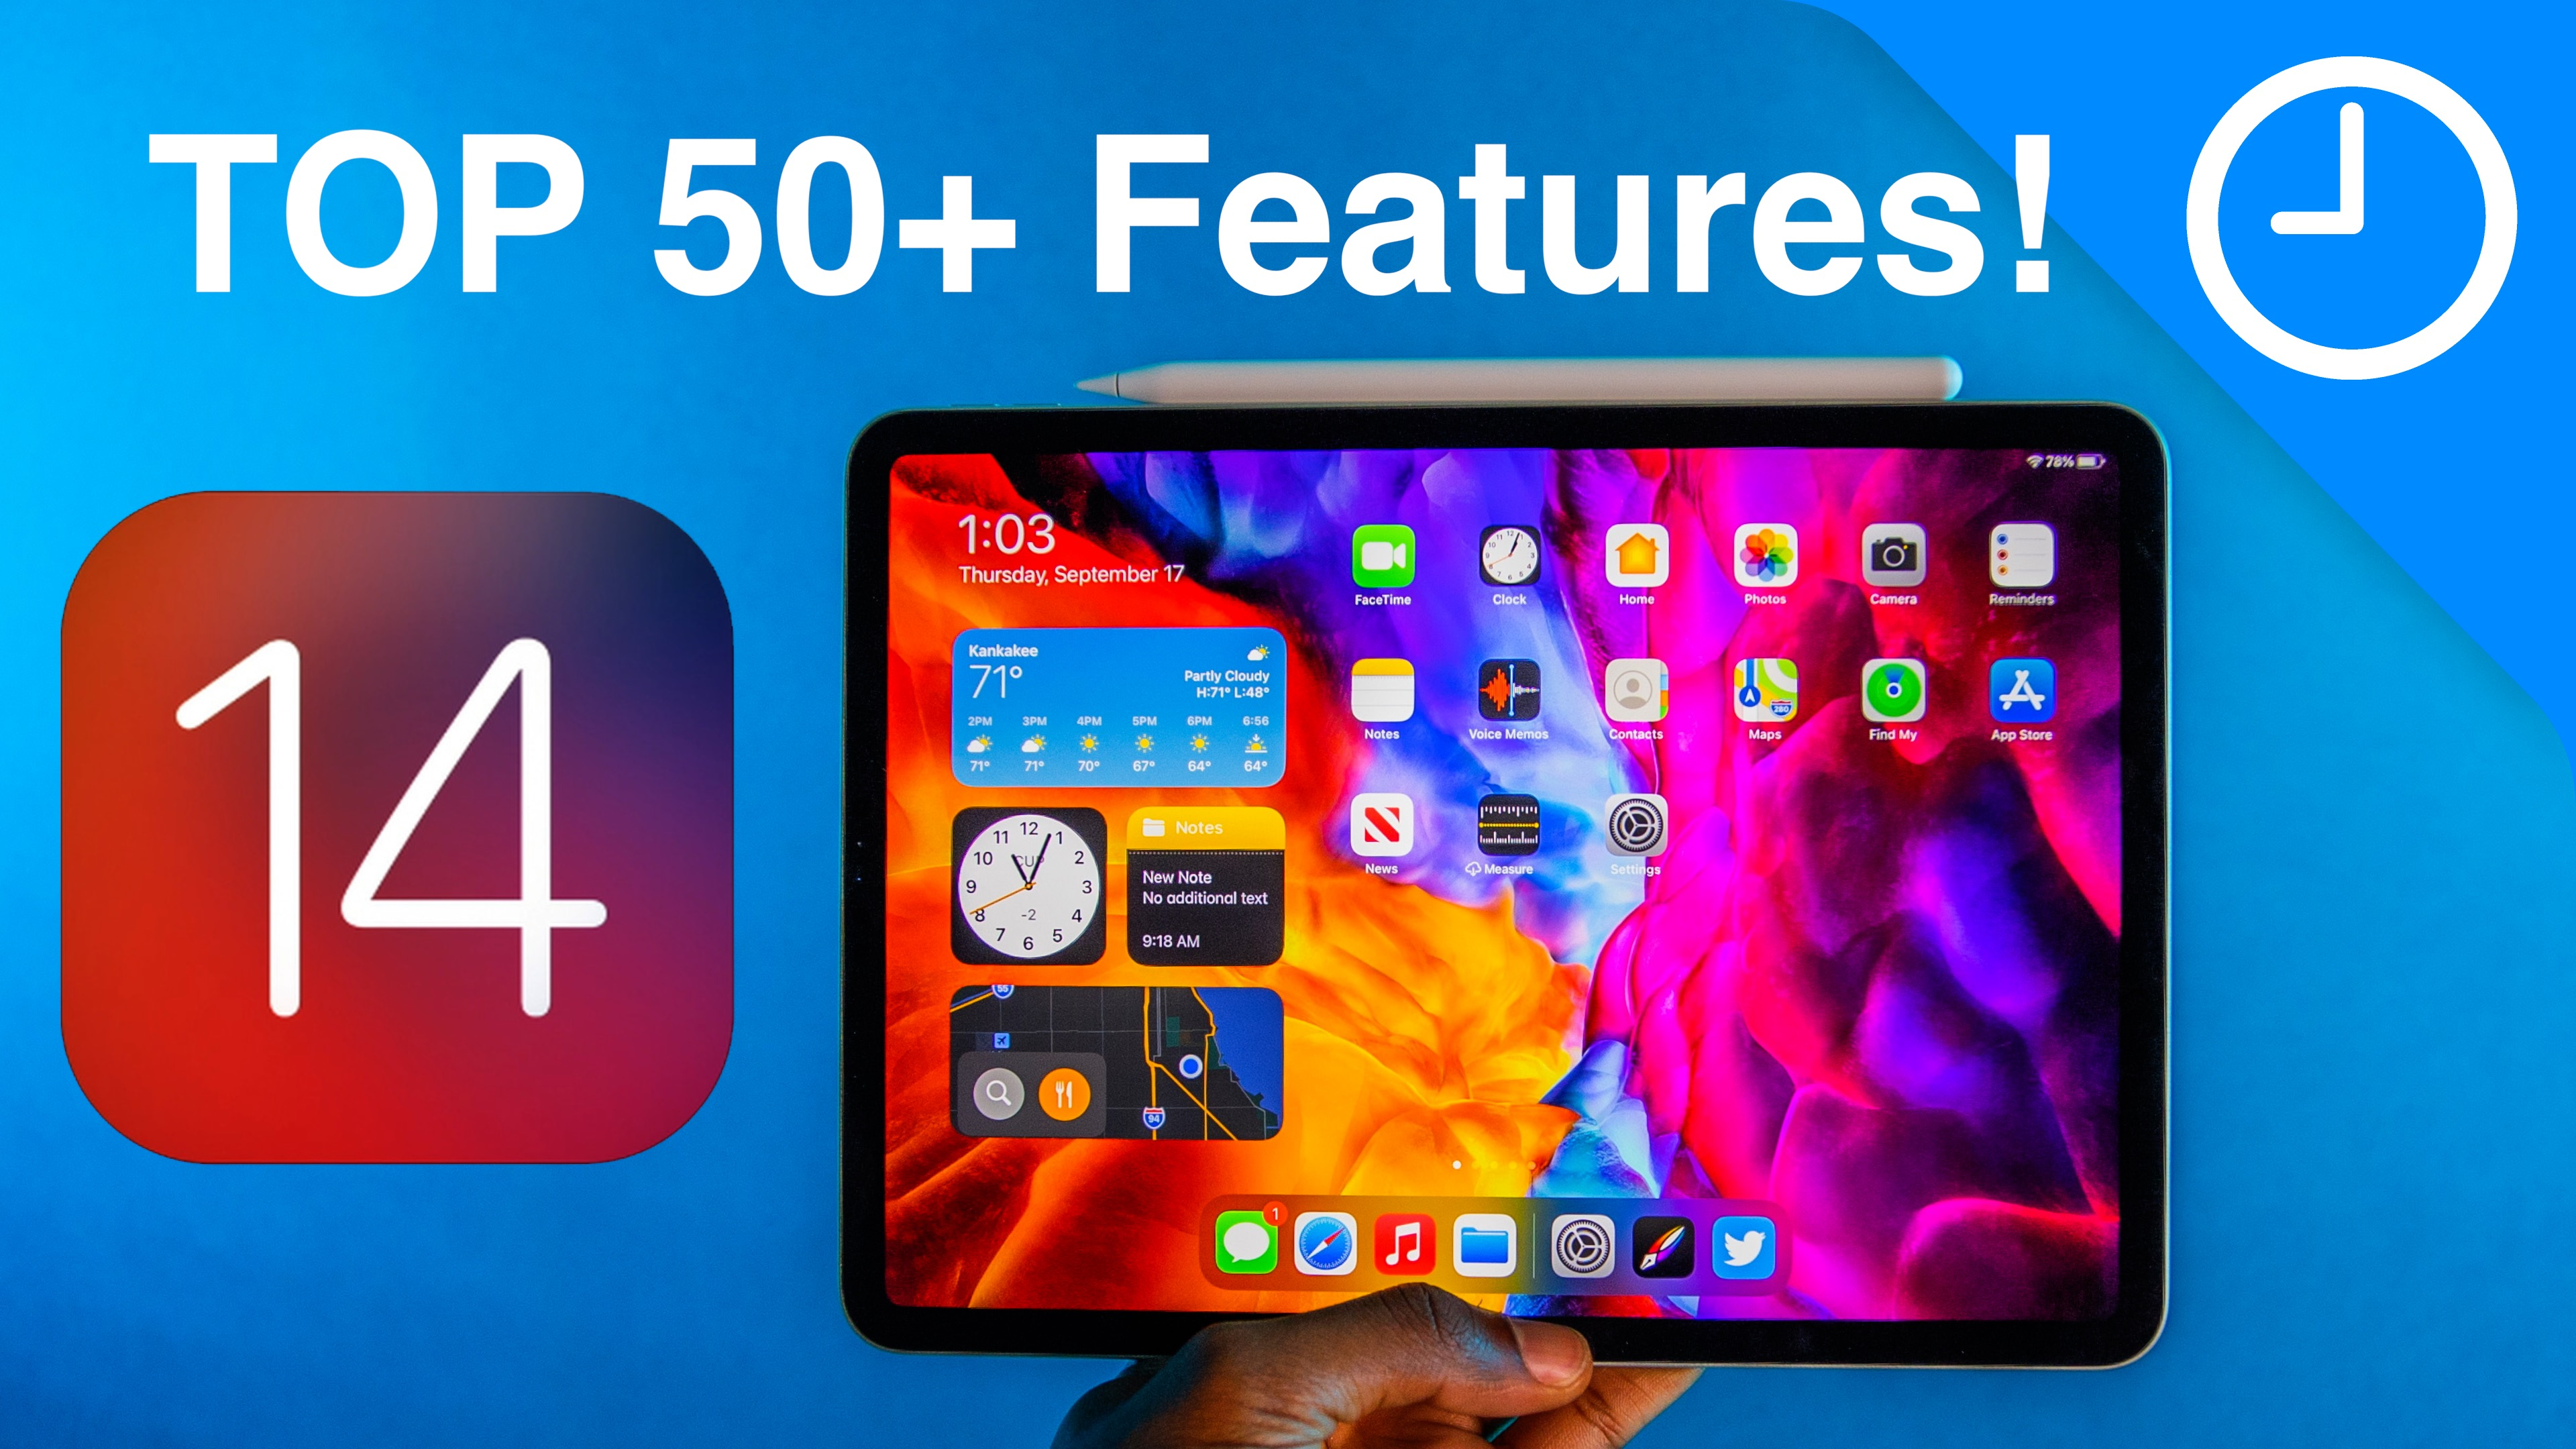 photo of iPadOS 14 – 50+ Top Features and Changes! [Video] image